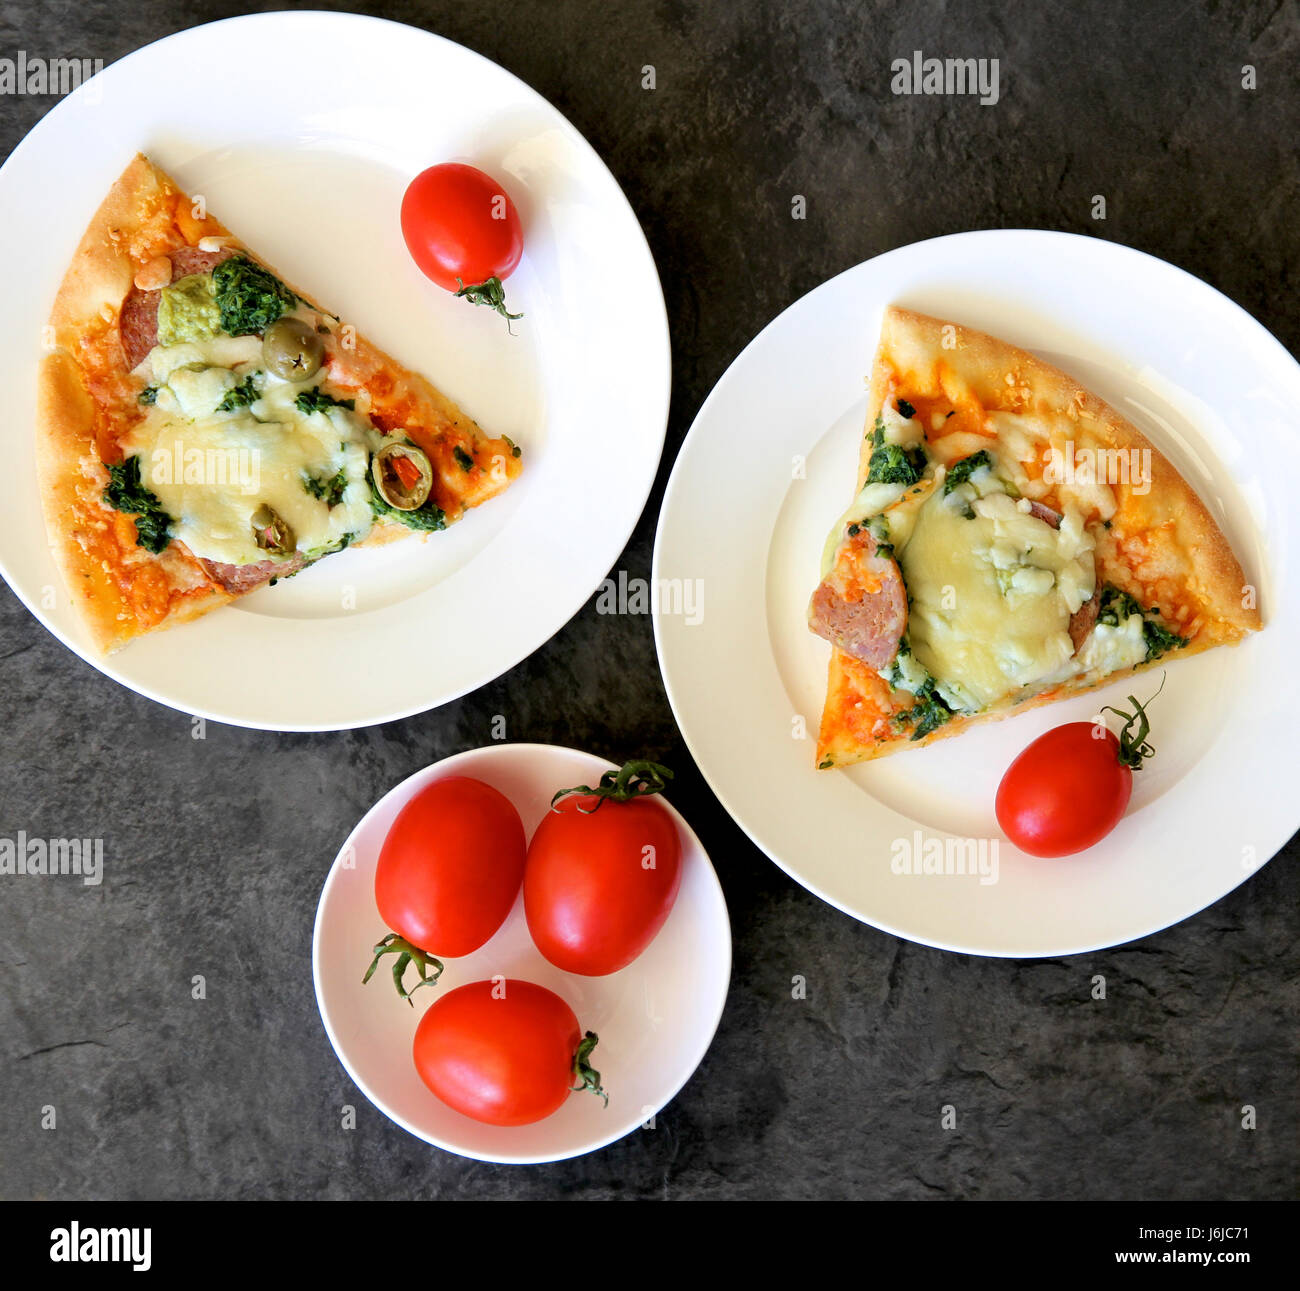 Pizza slice and red tomatoes on plates. - Stock Image